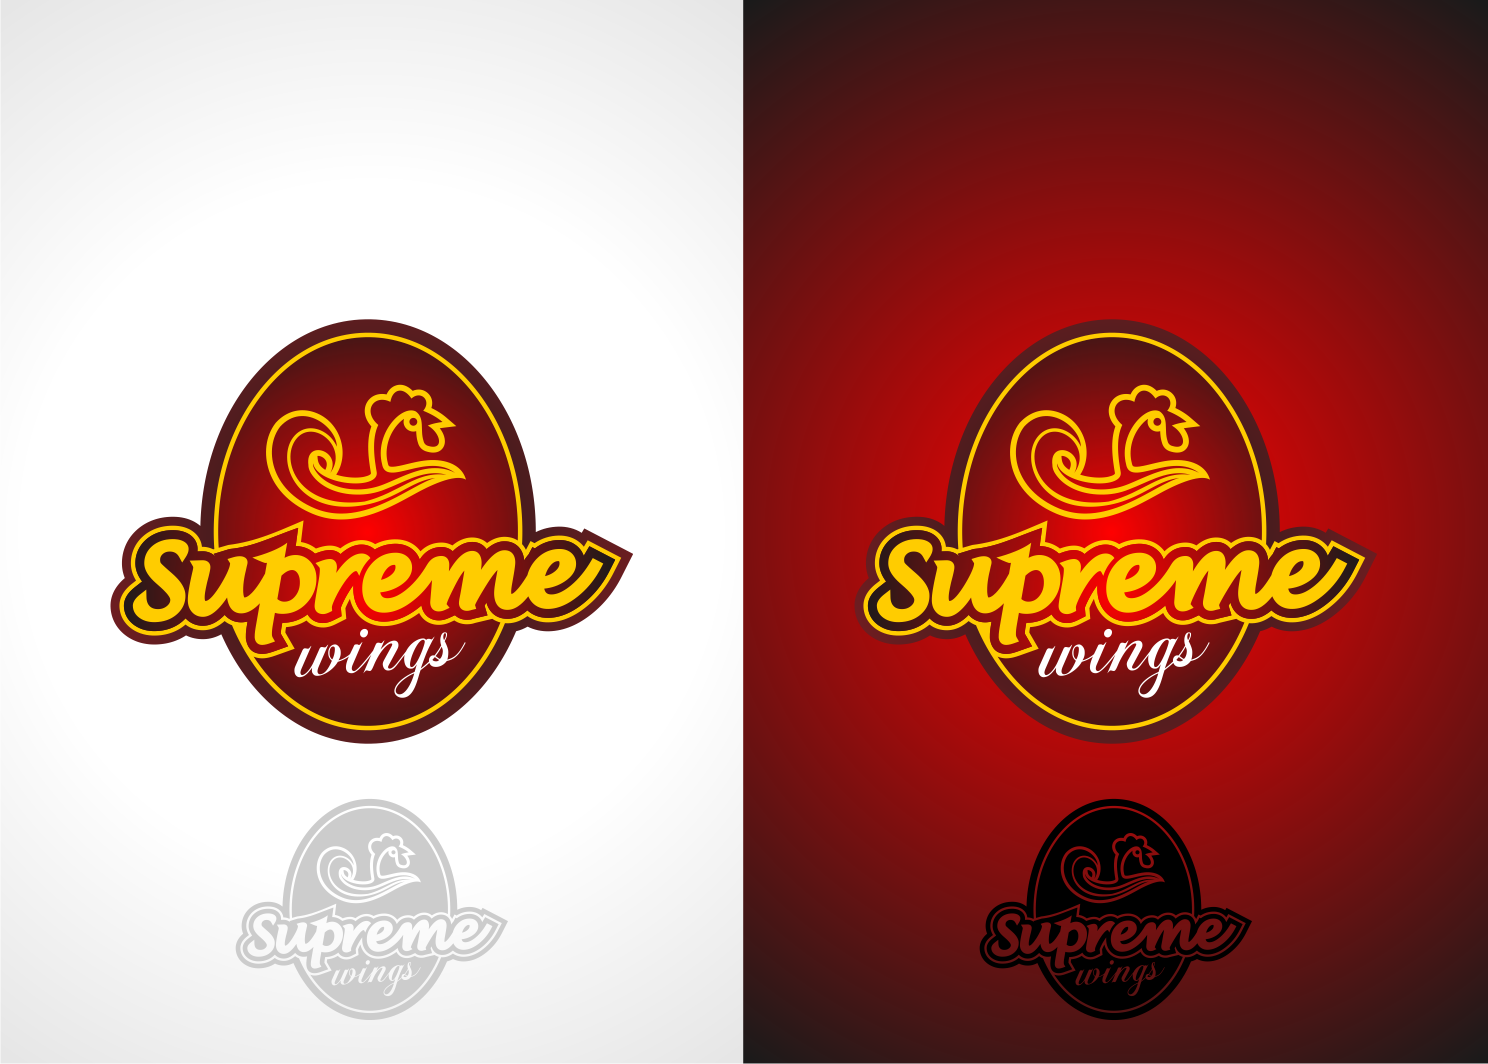 Supreme Wings needs a new logo